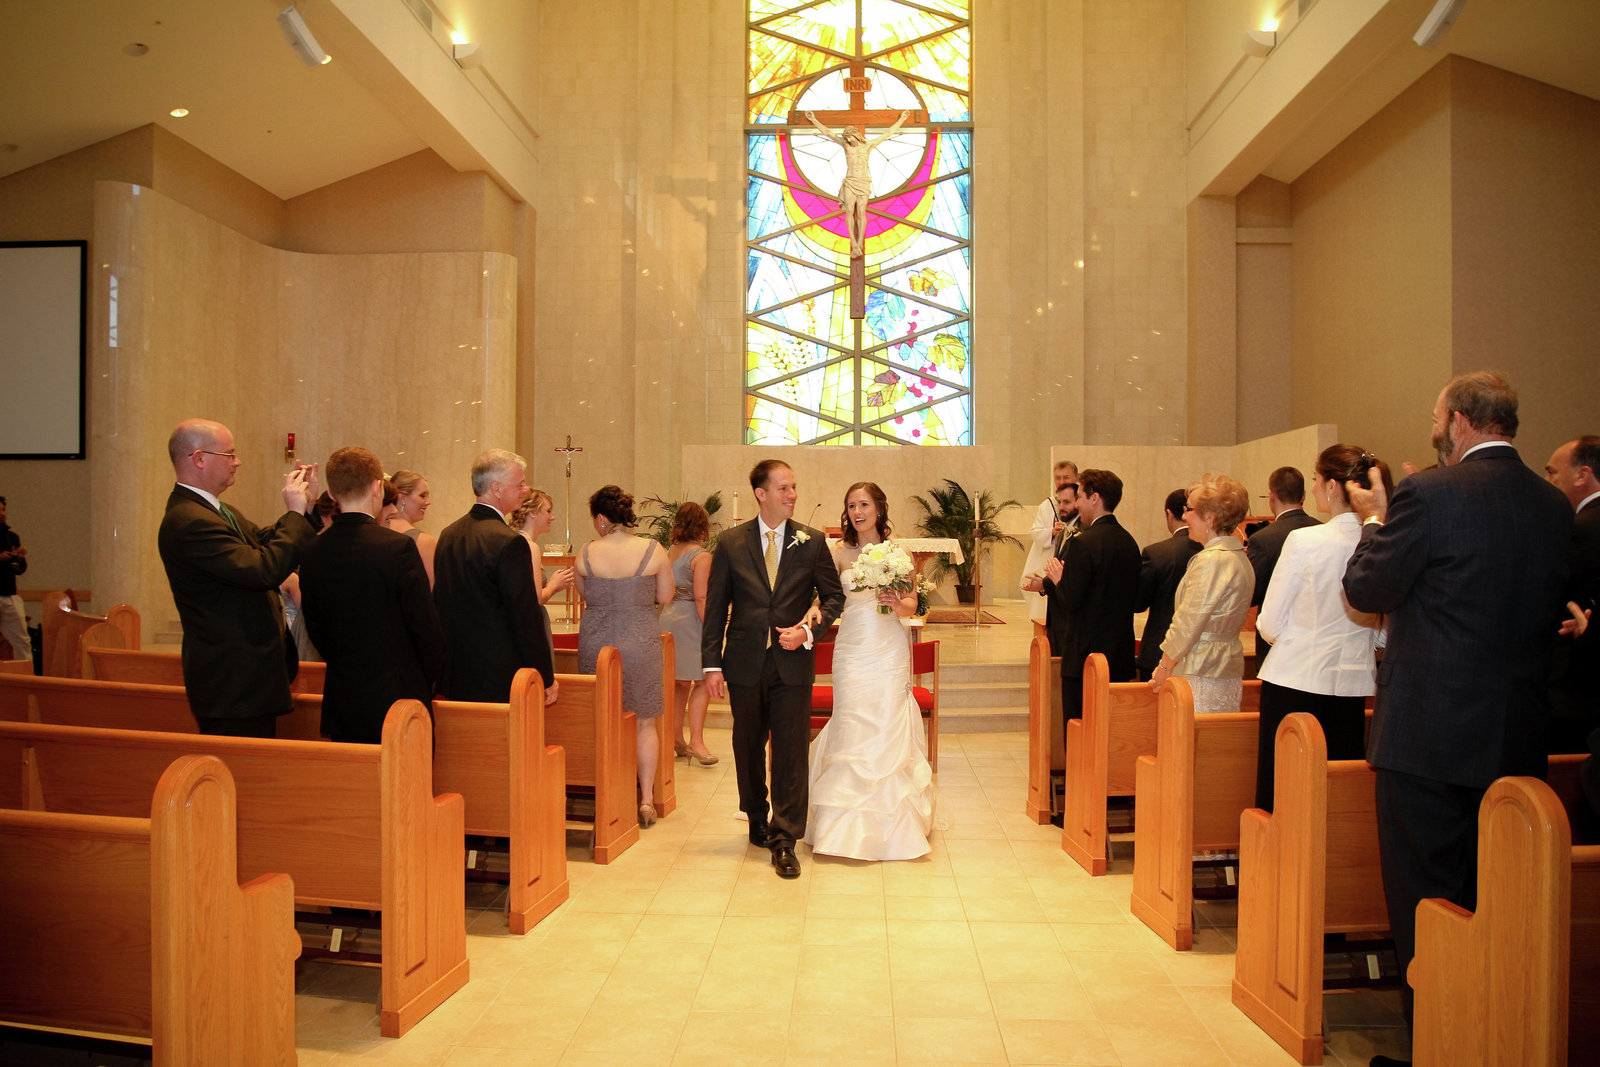 Destination-Wedding-Photos-0235